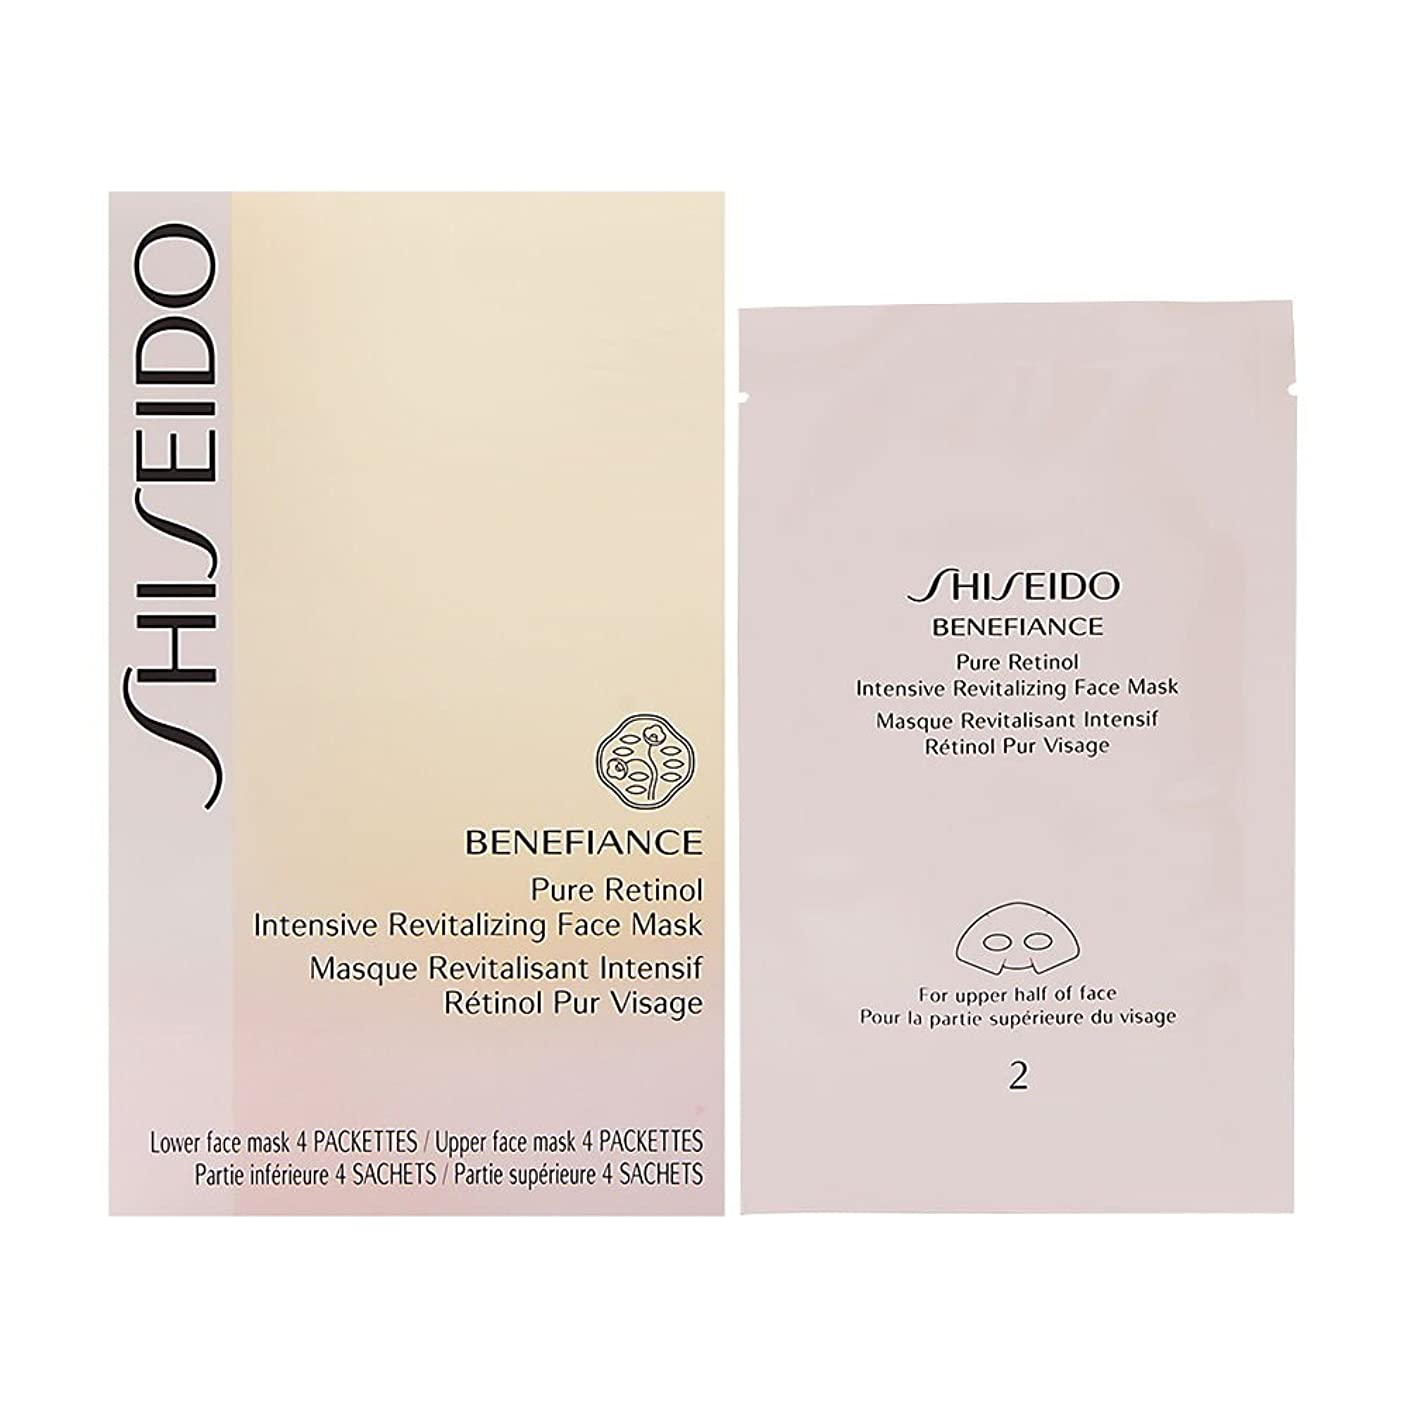 裸蛇行ダーベビルのテスBenefiance Pure Retinol Intensive Revitalizing Face Mask